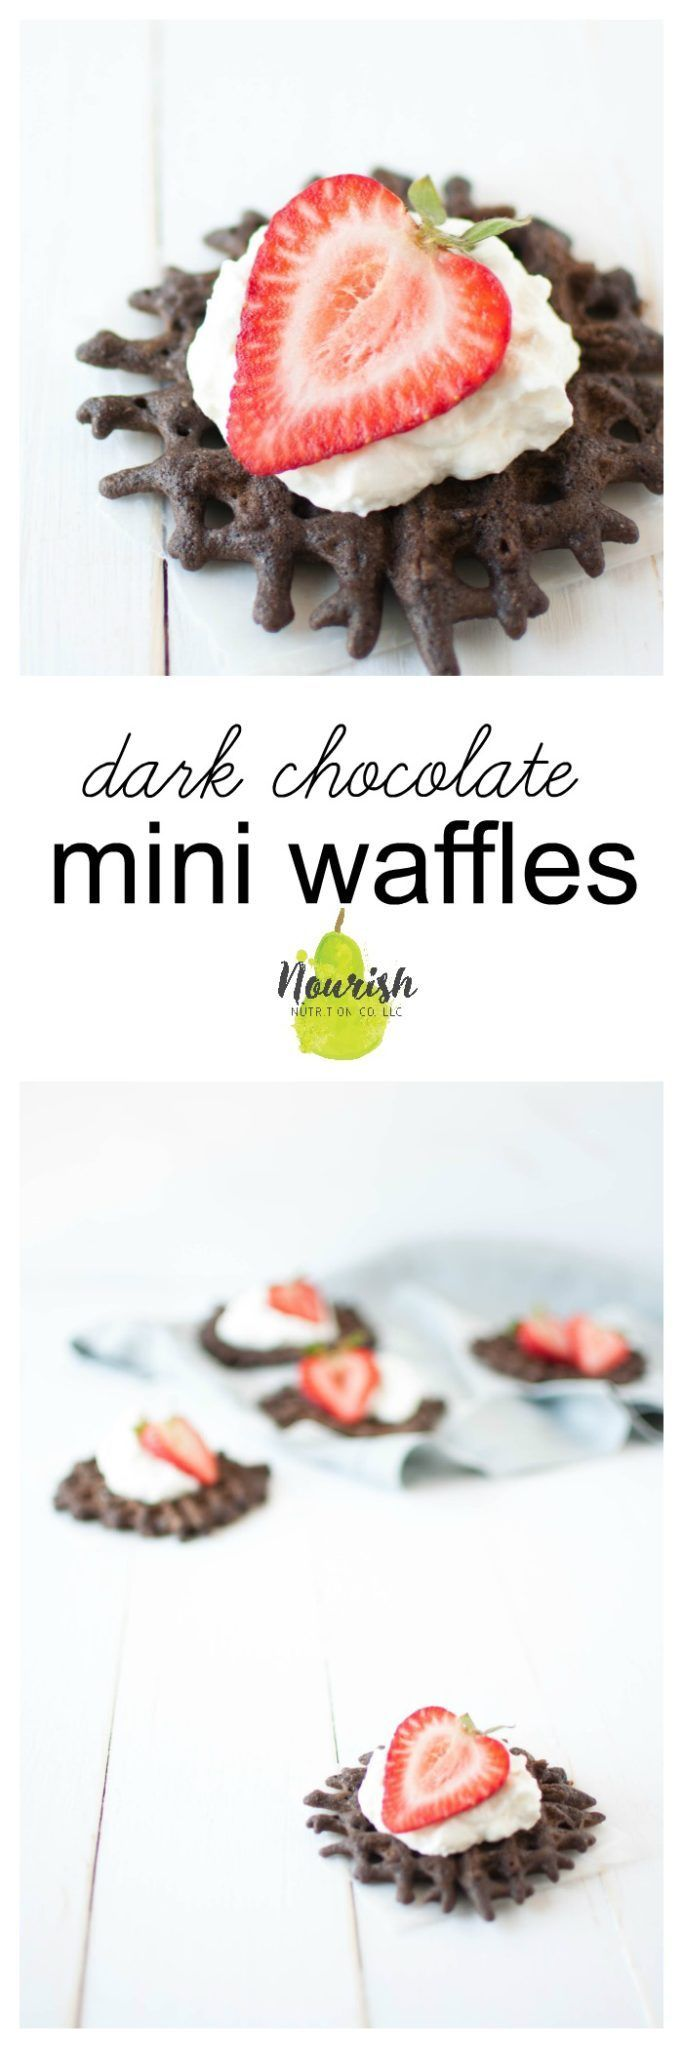 These dark chocolate mini waffles are a quick and delicious dessert or breakfast. They're made with whole grains and not much added sugar. #waffles #chocolate